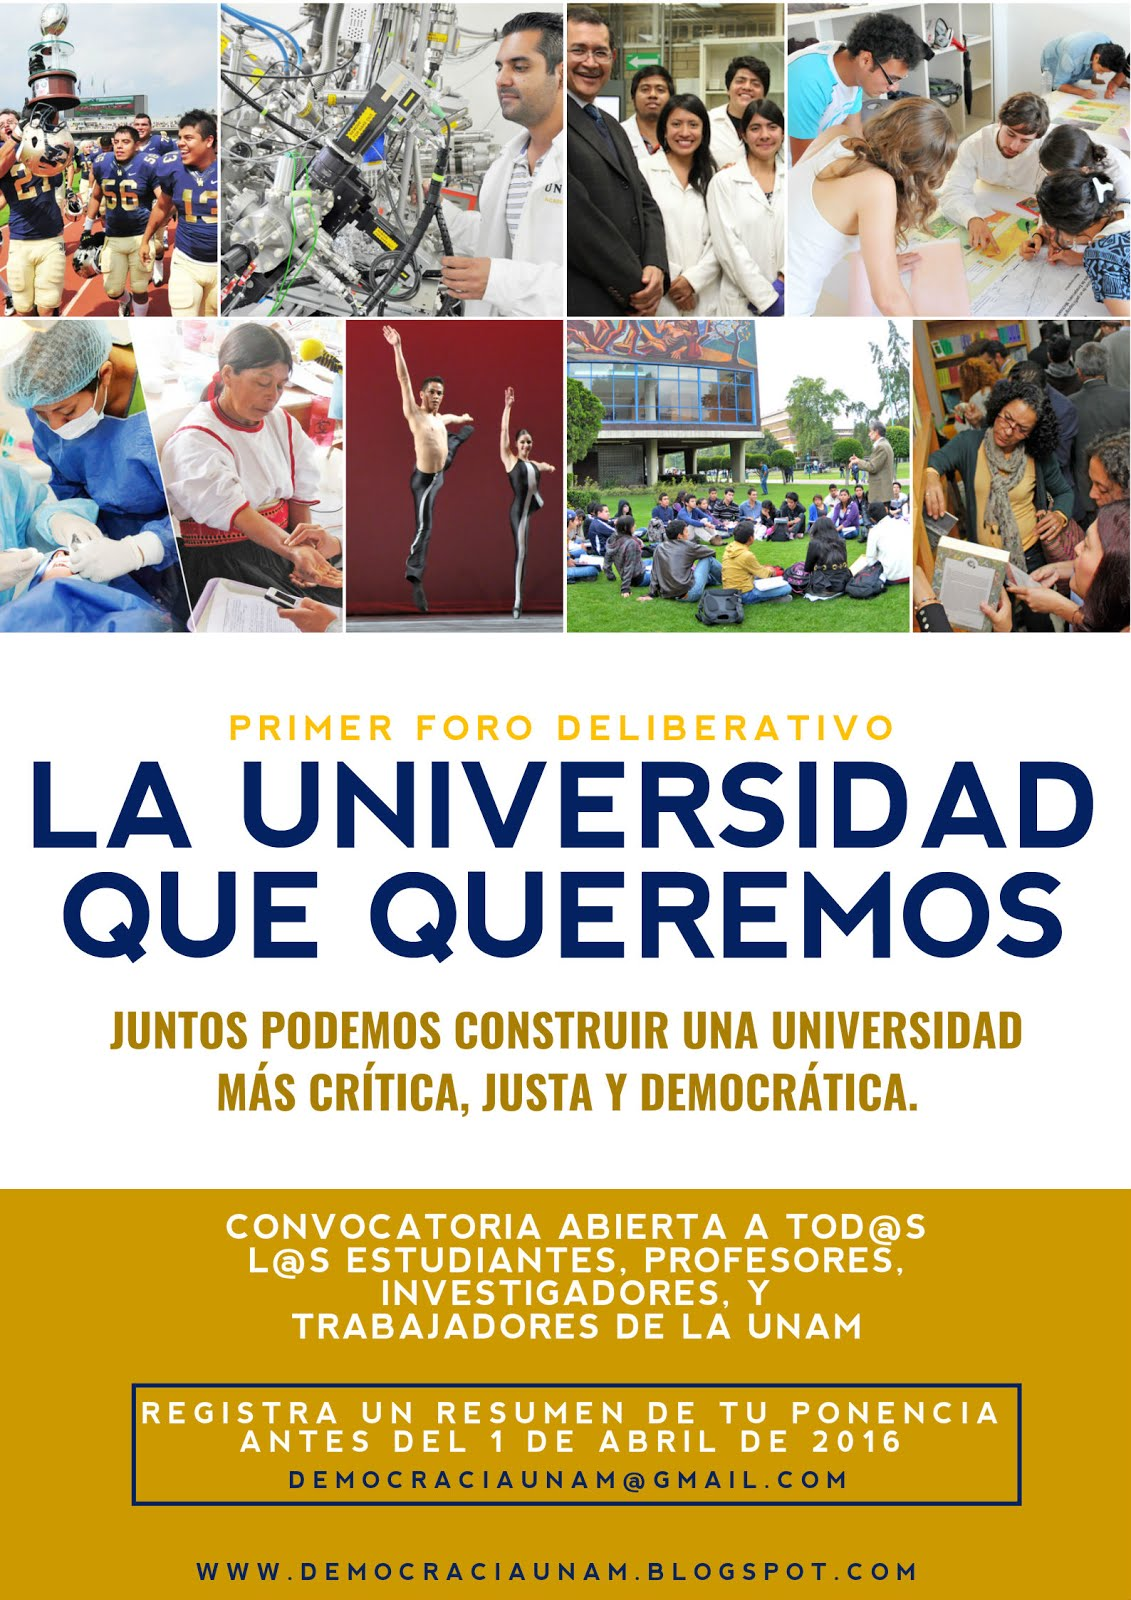 LA UNIVERSIDAD QUE QUEREMOS